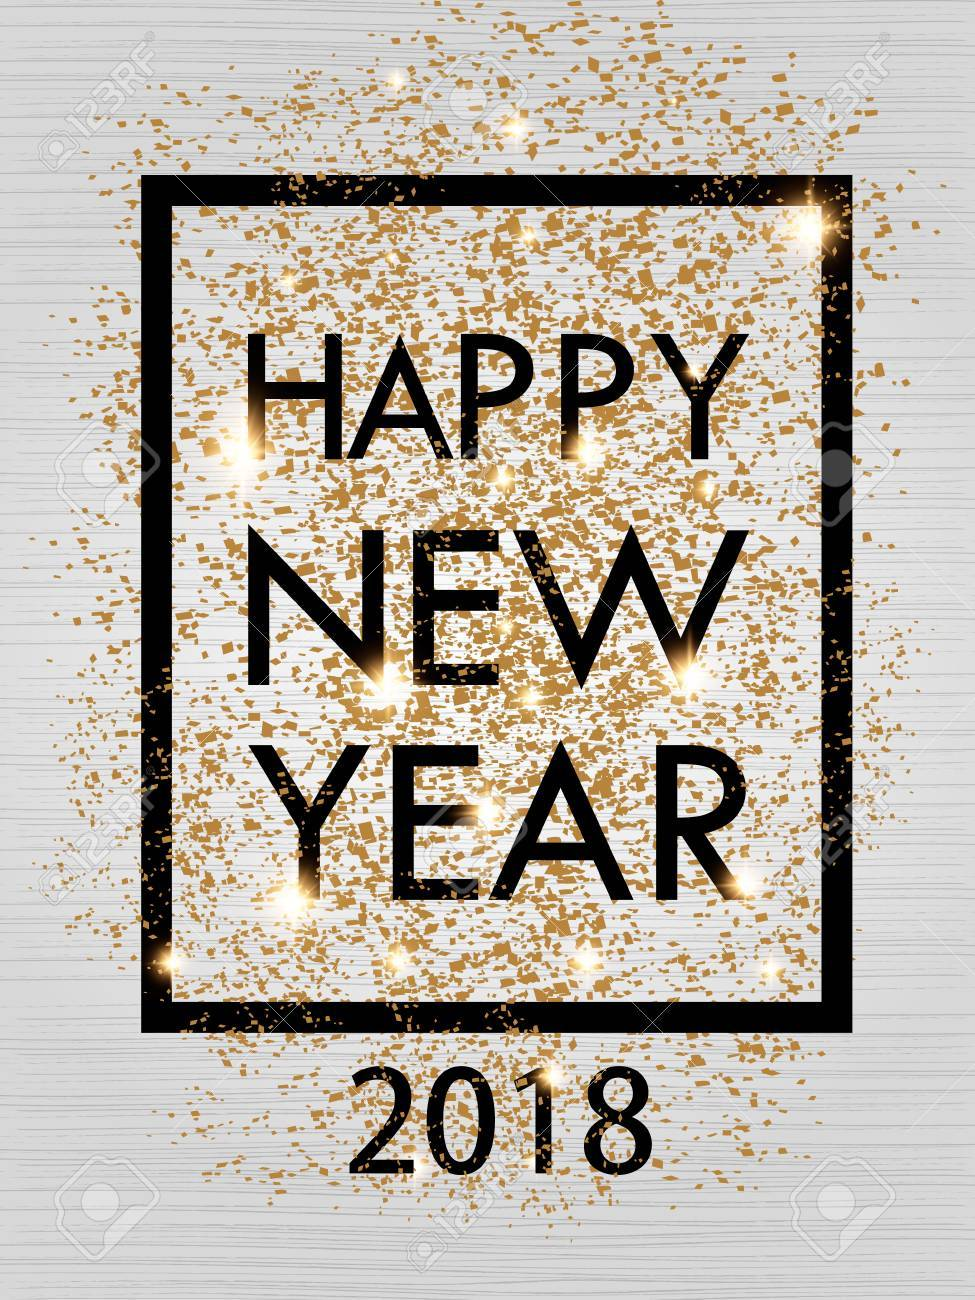 Happy new year 2018 gold and black color space for text in the happy new year 2018 gold and black color space for text in the frame christmas jeuxipadfo Image collections